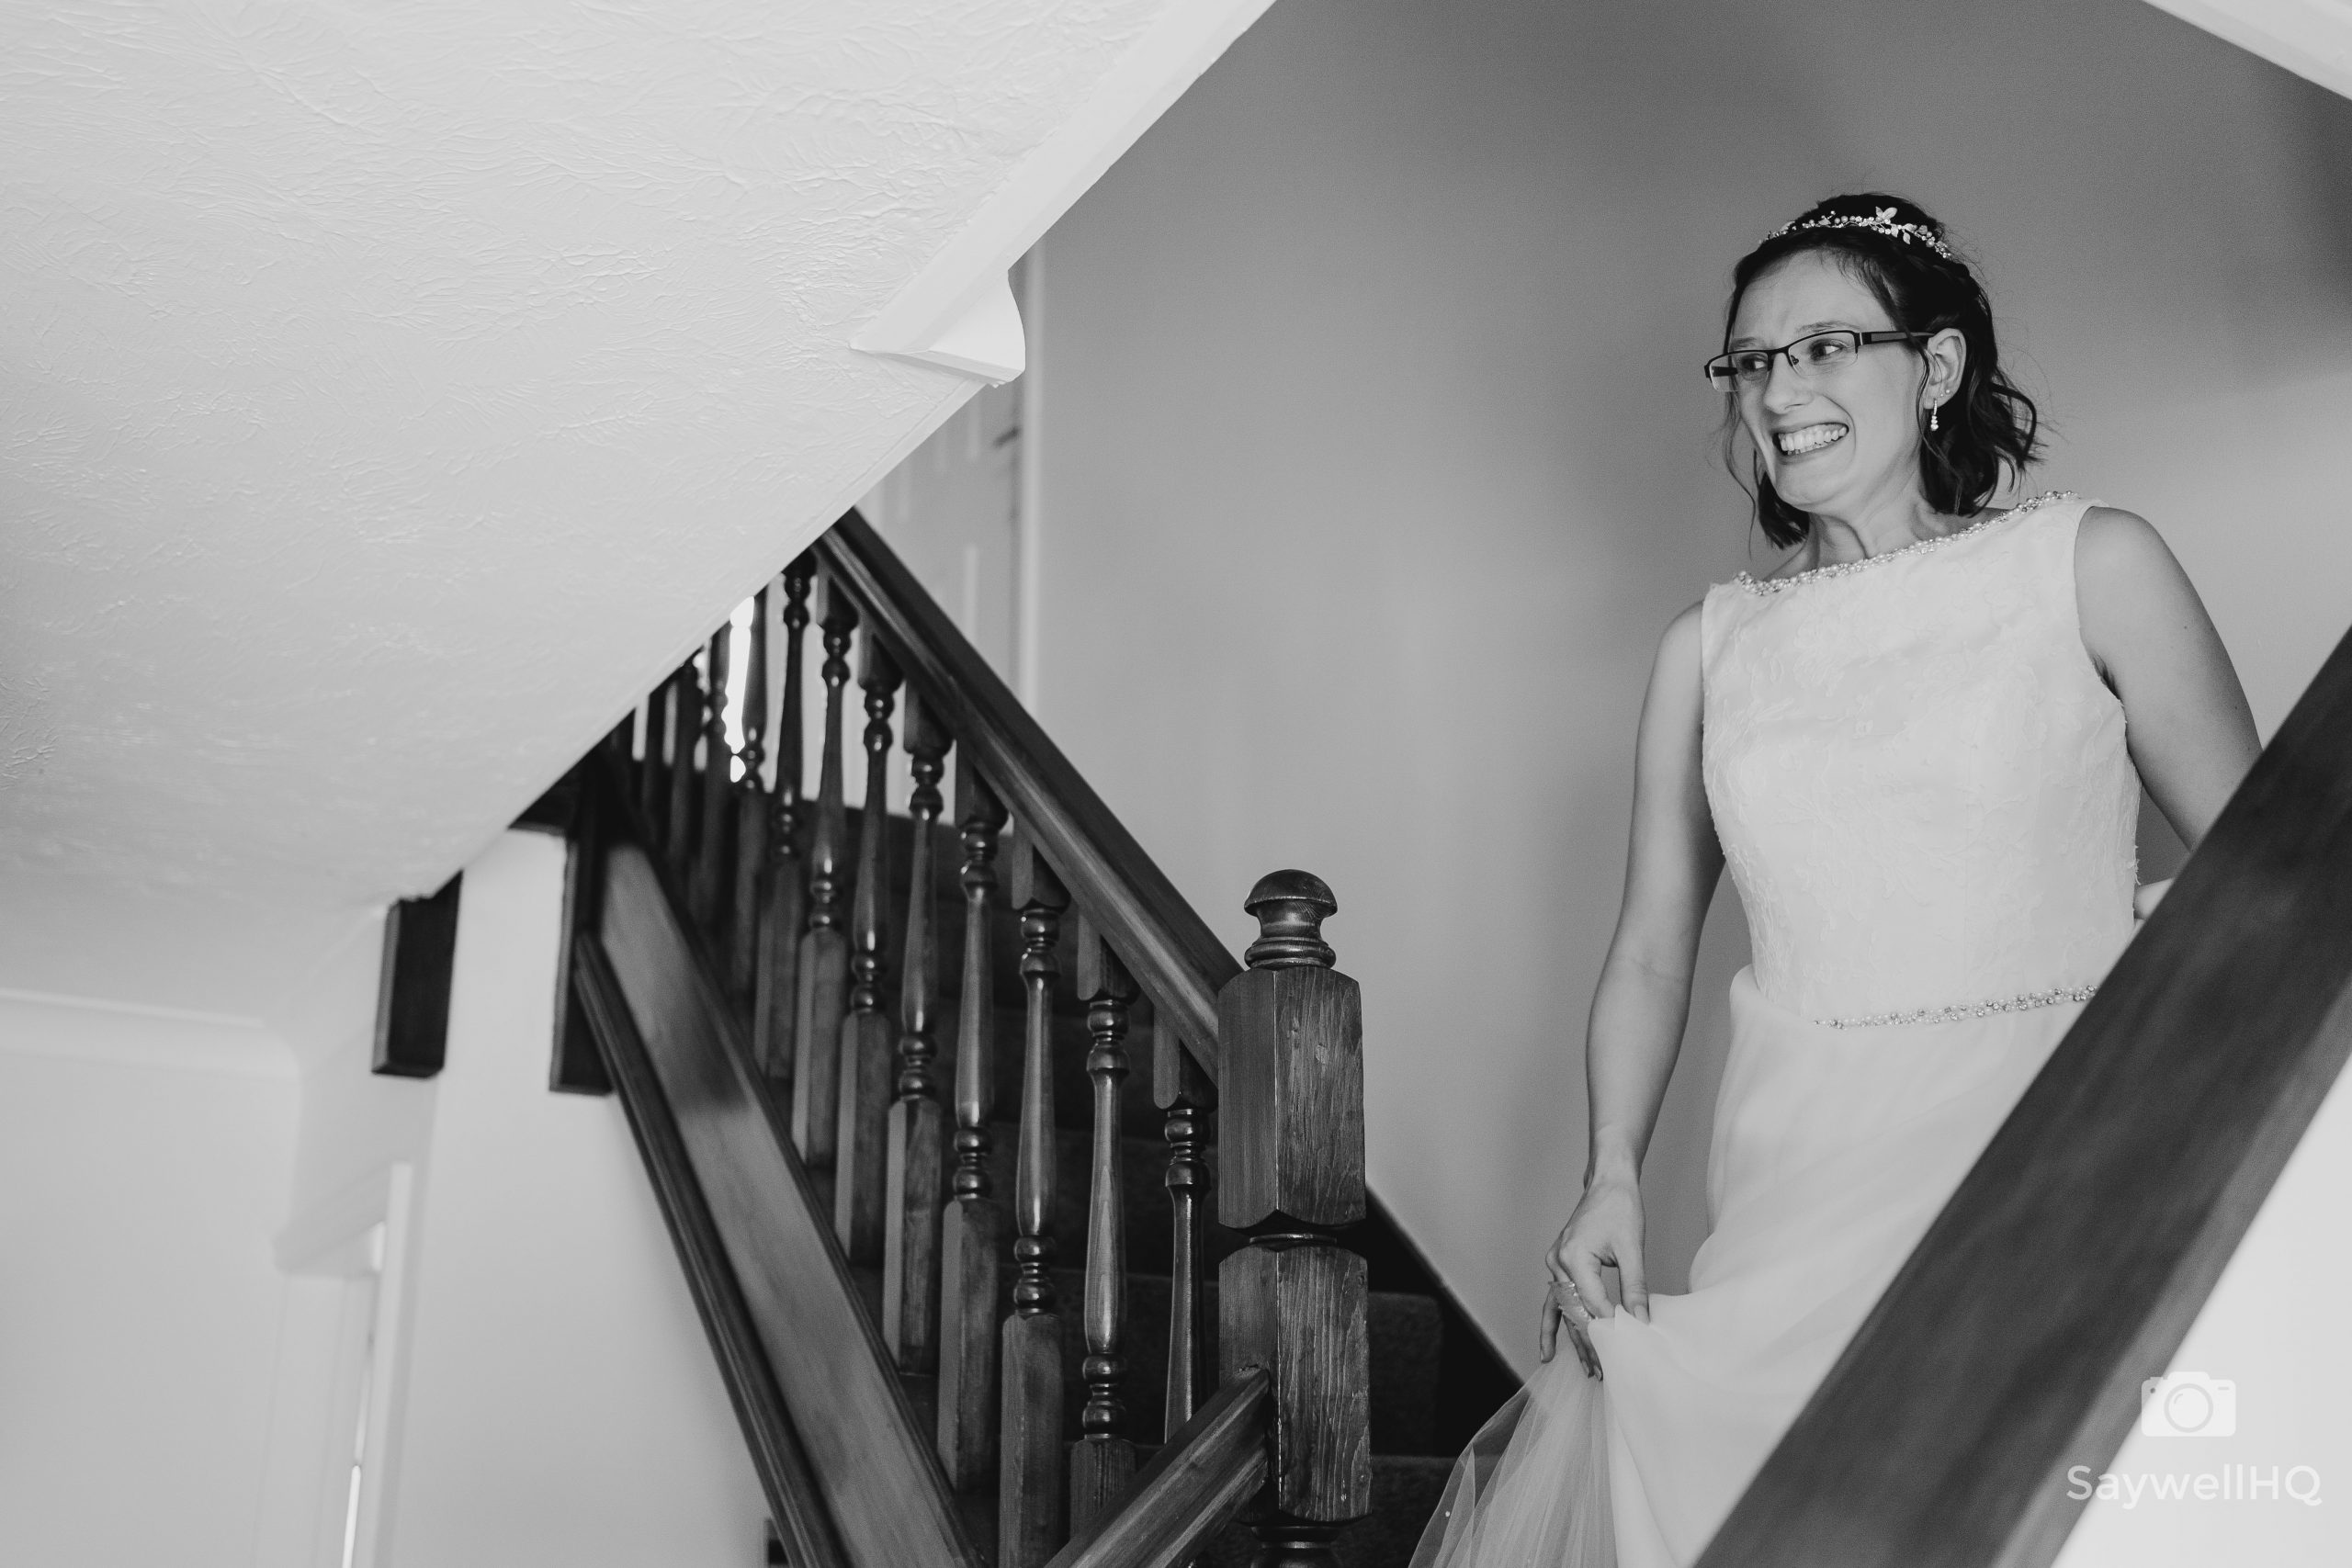 bride looking excited at putting her wedding dress on during the Covid wedding restrictions